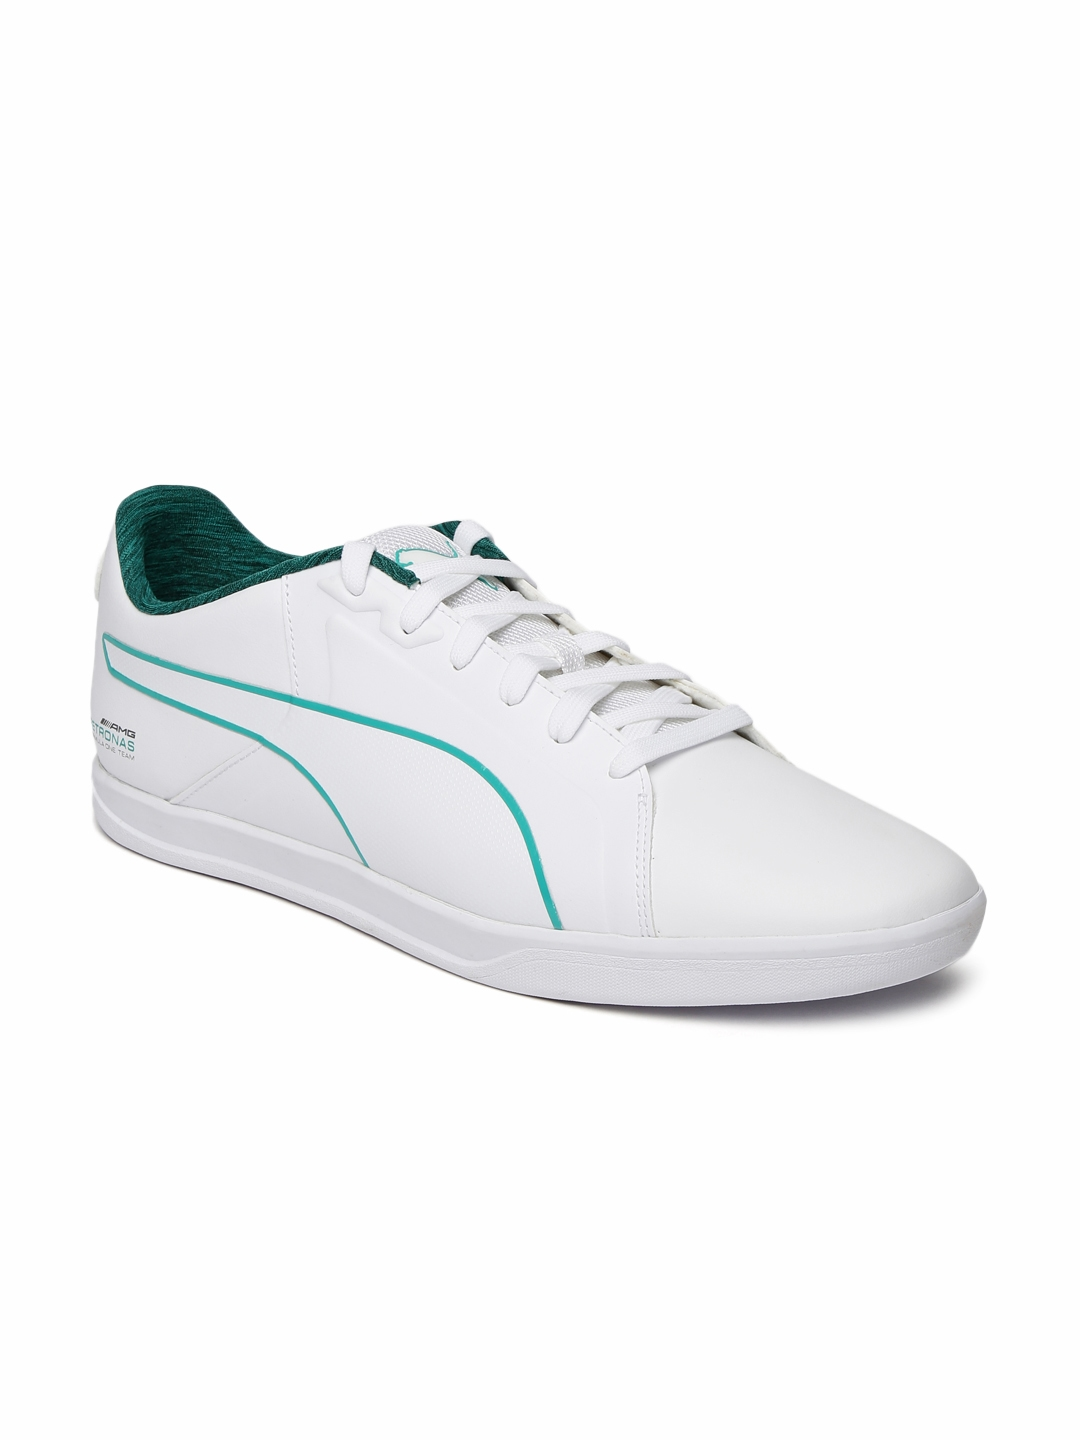 e1ea5b25bc1 Buy Puma Men White MAMGP Court Sneakers - Casual Shoes for Men ...